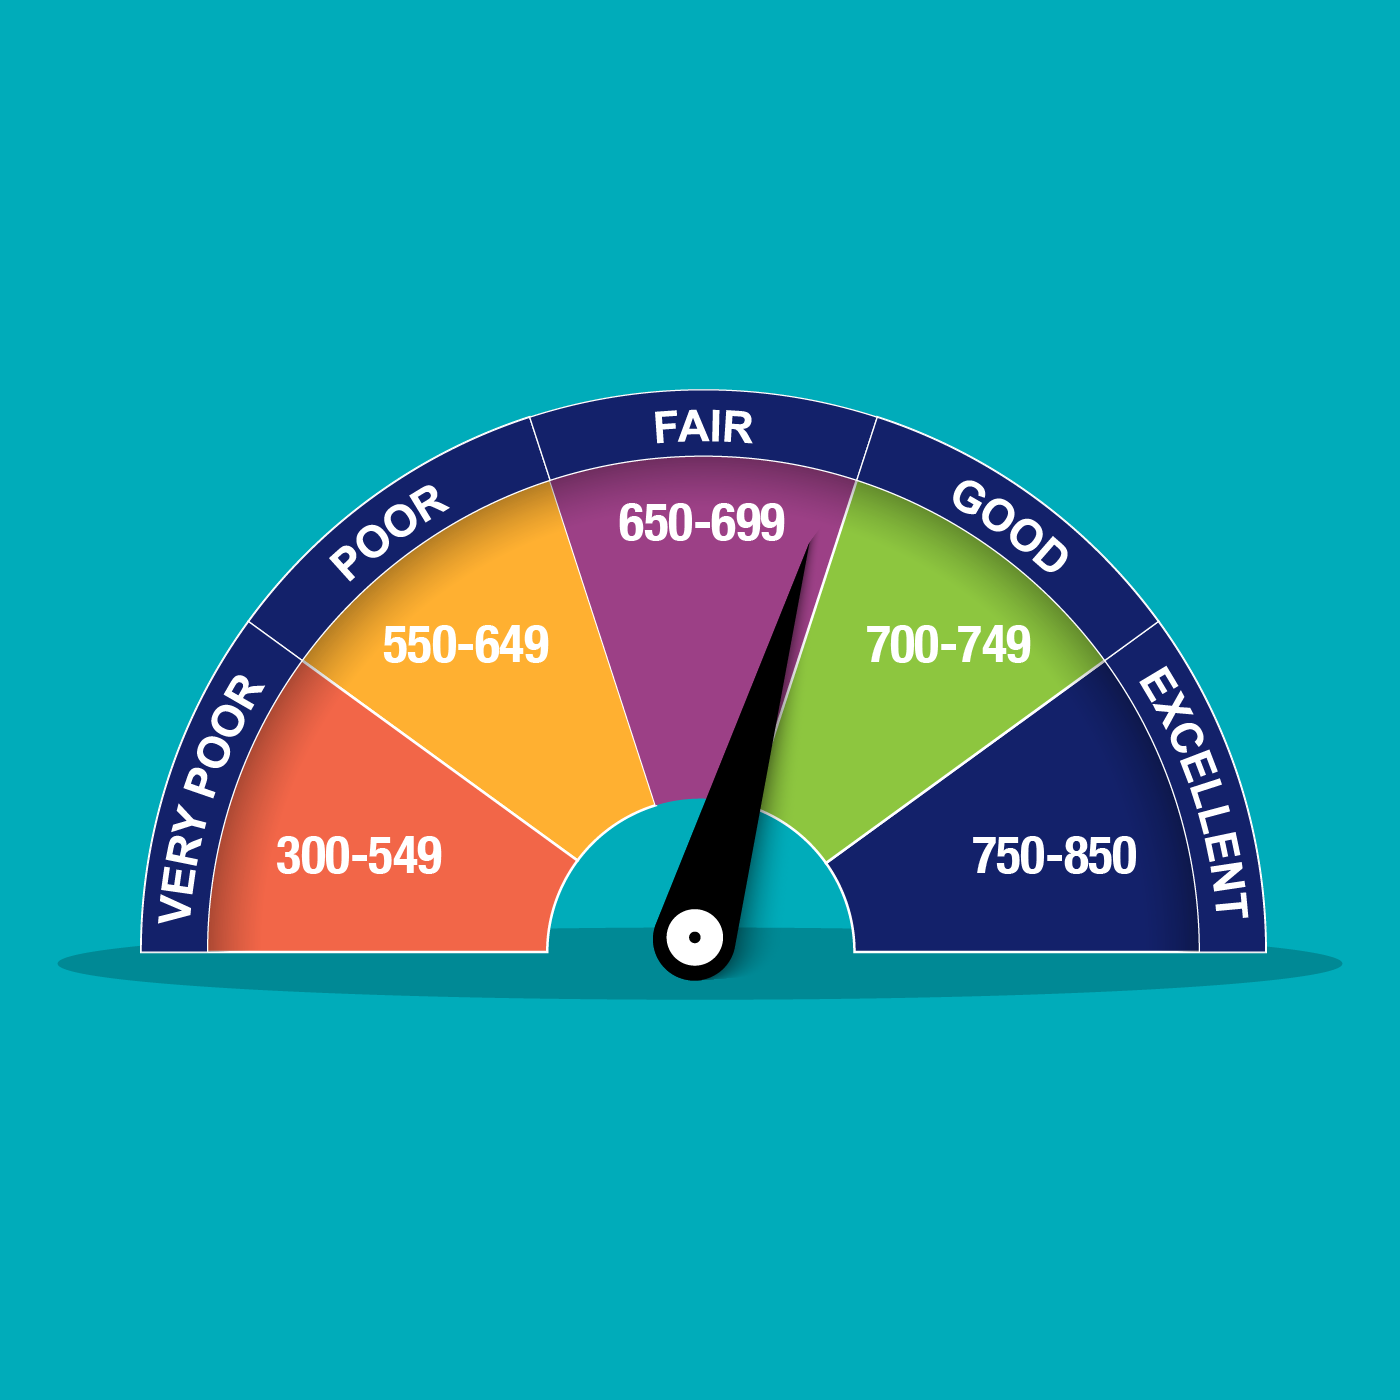 Student Credit Scores A Guide for College - College Ave